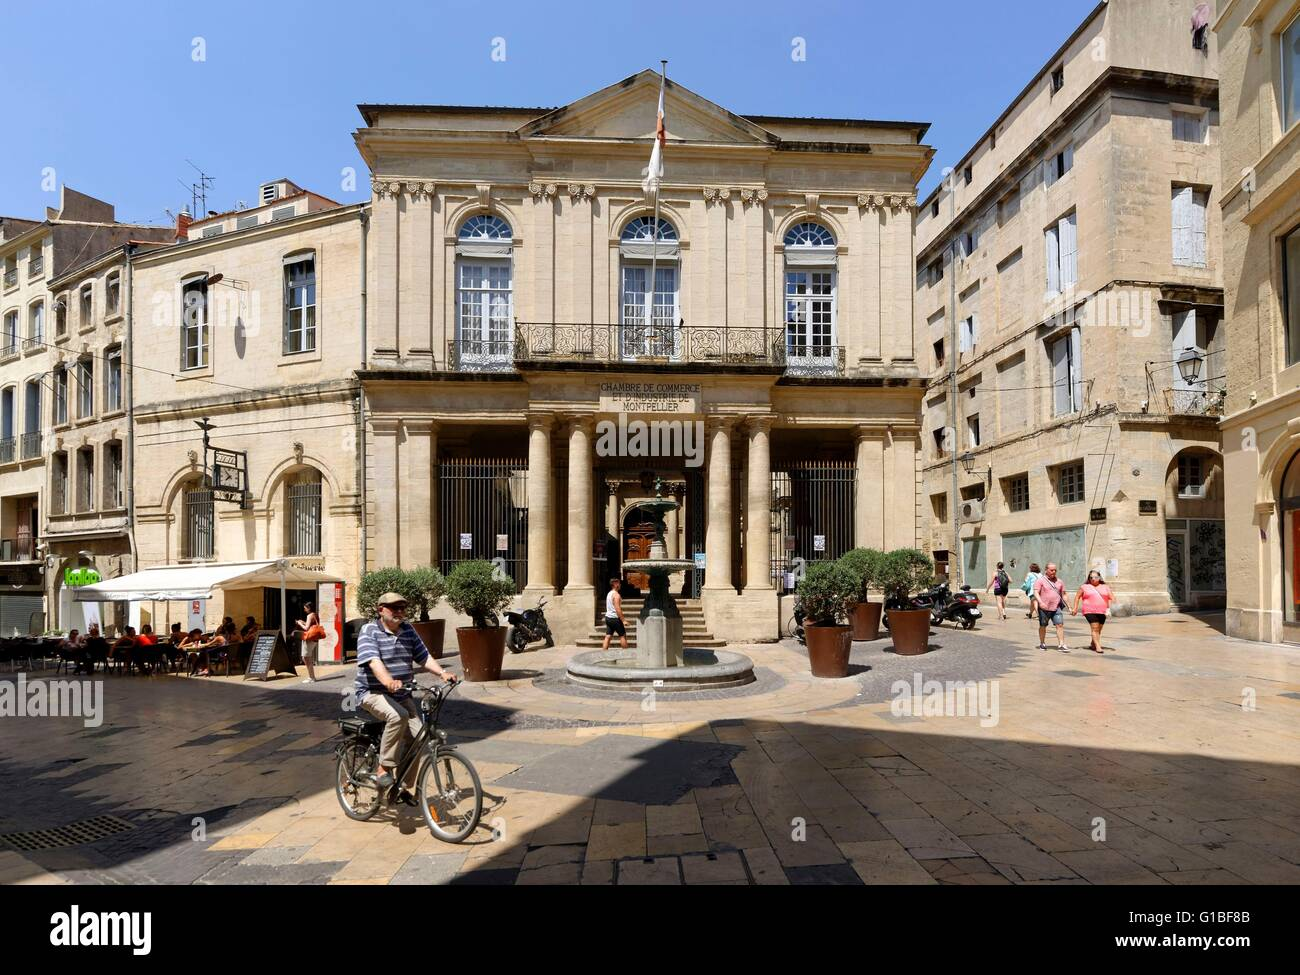 France Herault Montpellier Historical Center The Ecusson The Stock Photo Alamy